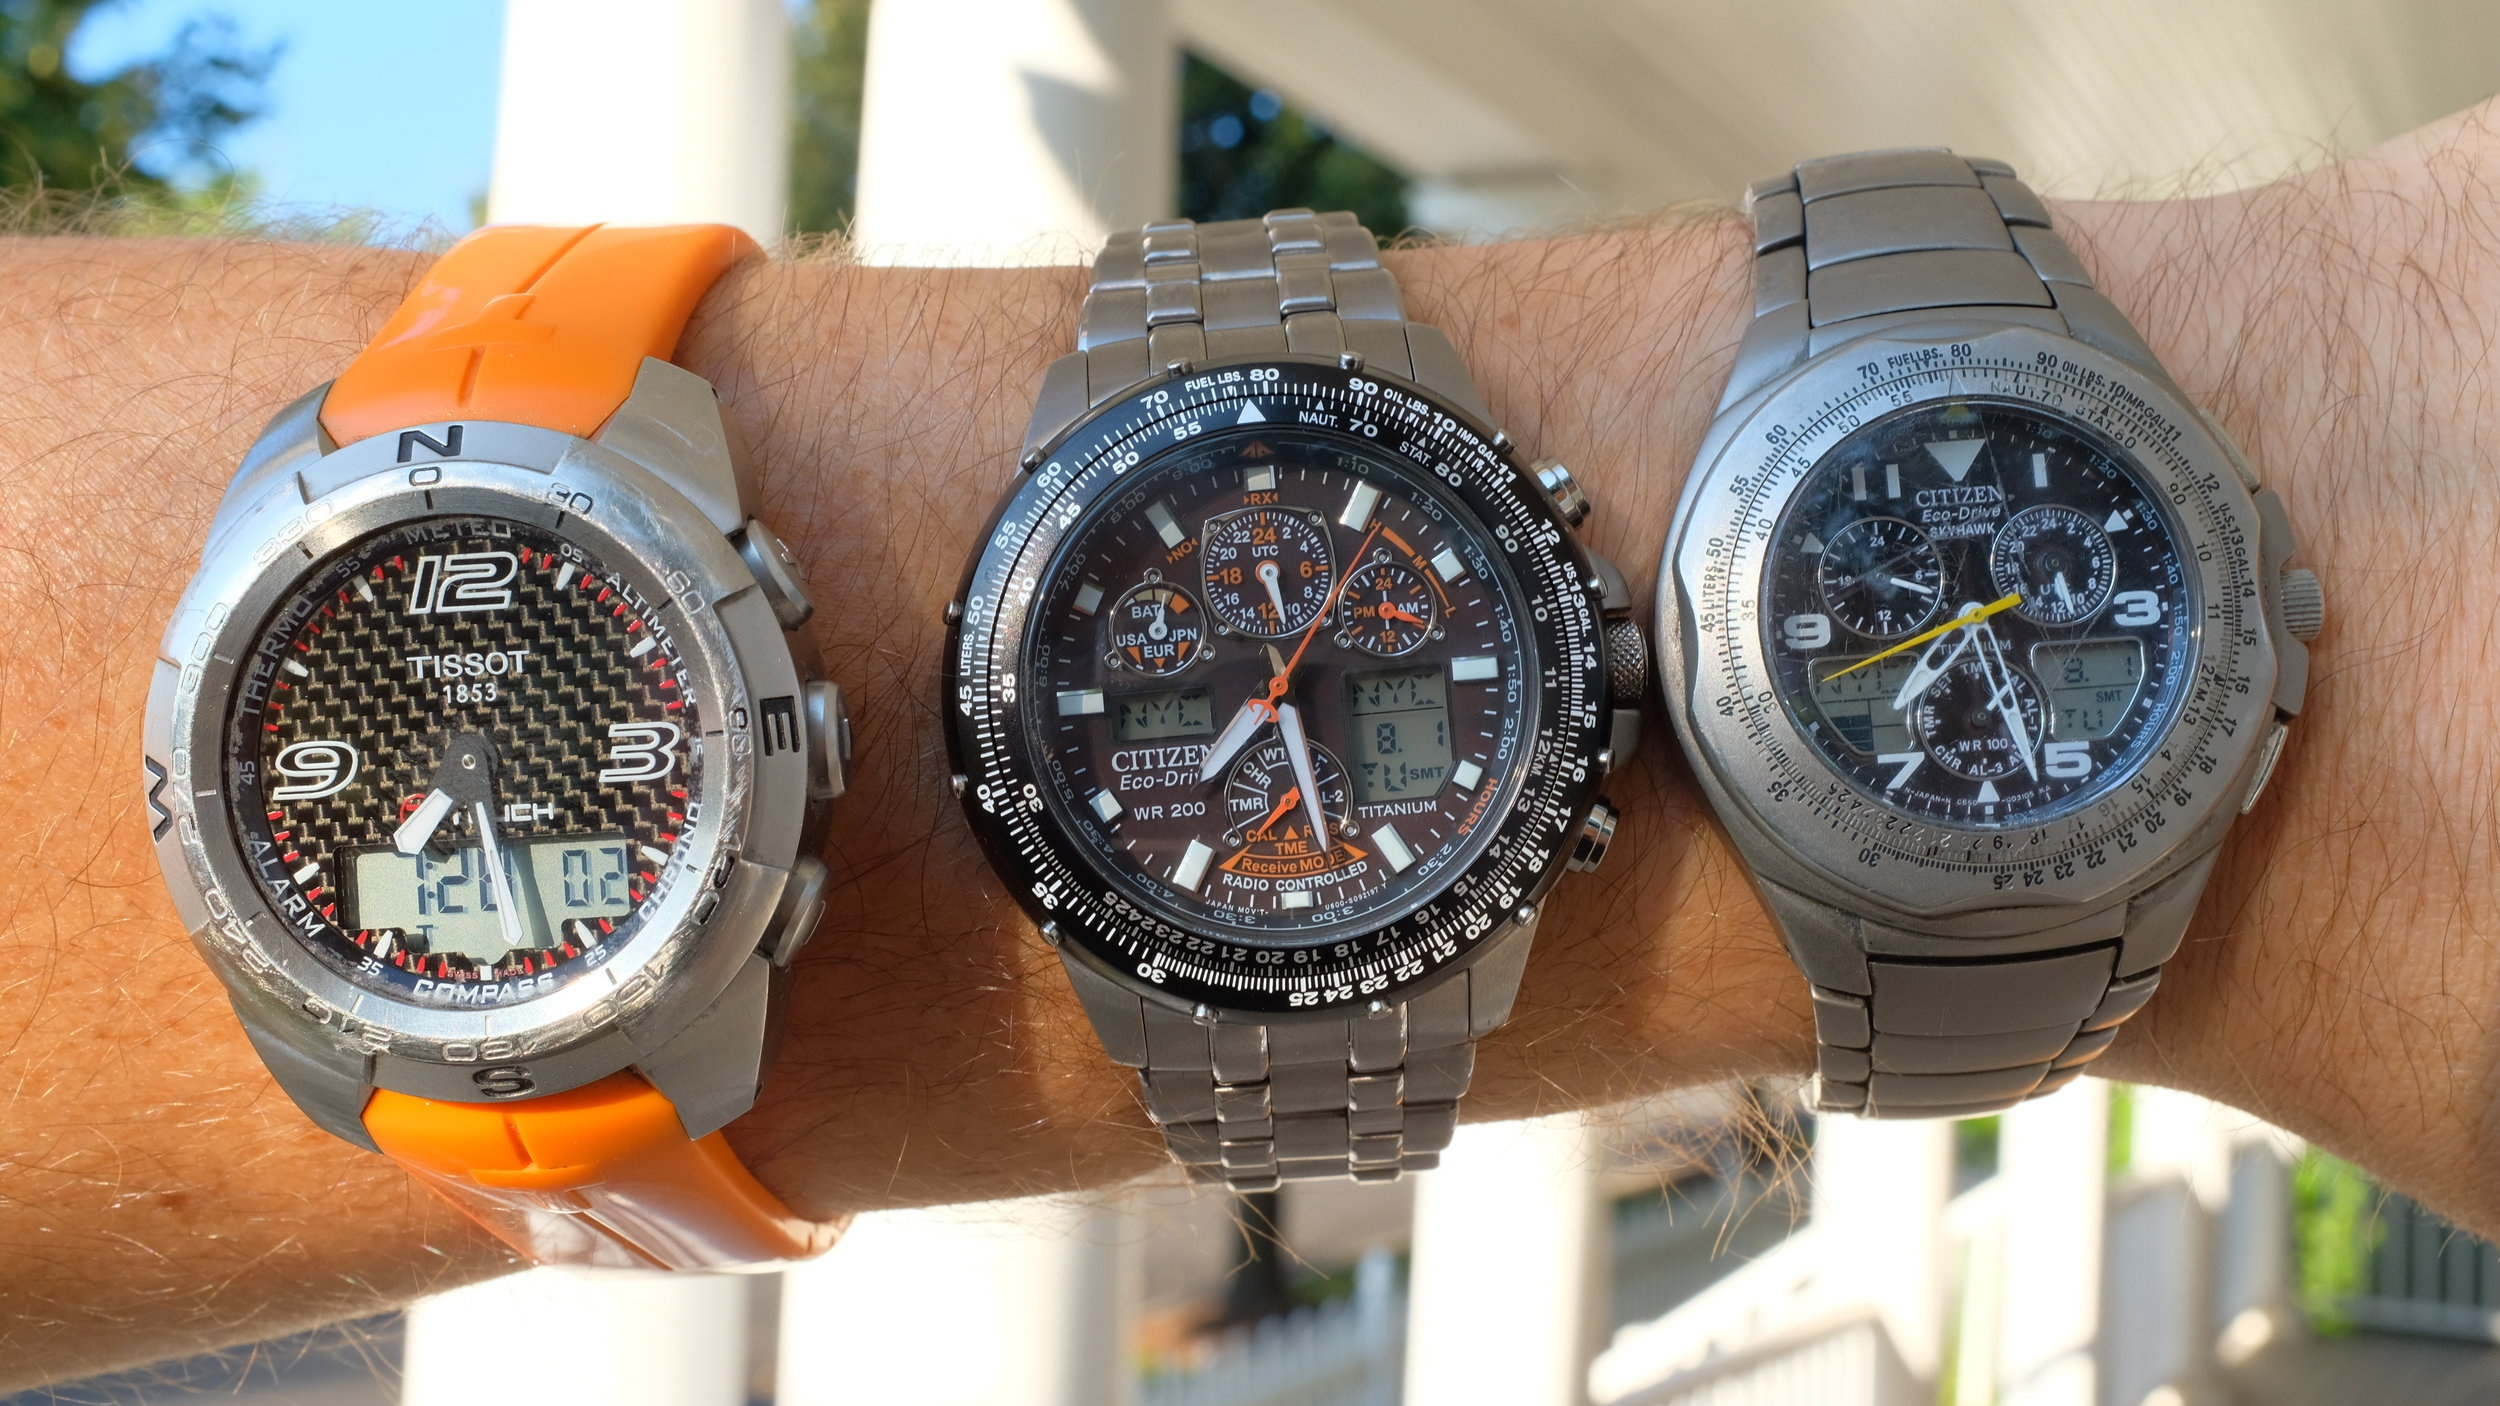 My Tissot T-Touch Expert purchased 2009 (left), my new Citizen Skyhawk Titanium purchased 2017 (center), and my older Citizen Skyhawk Titanium purchased 2004 (right).